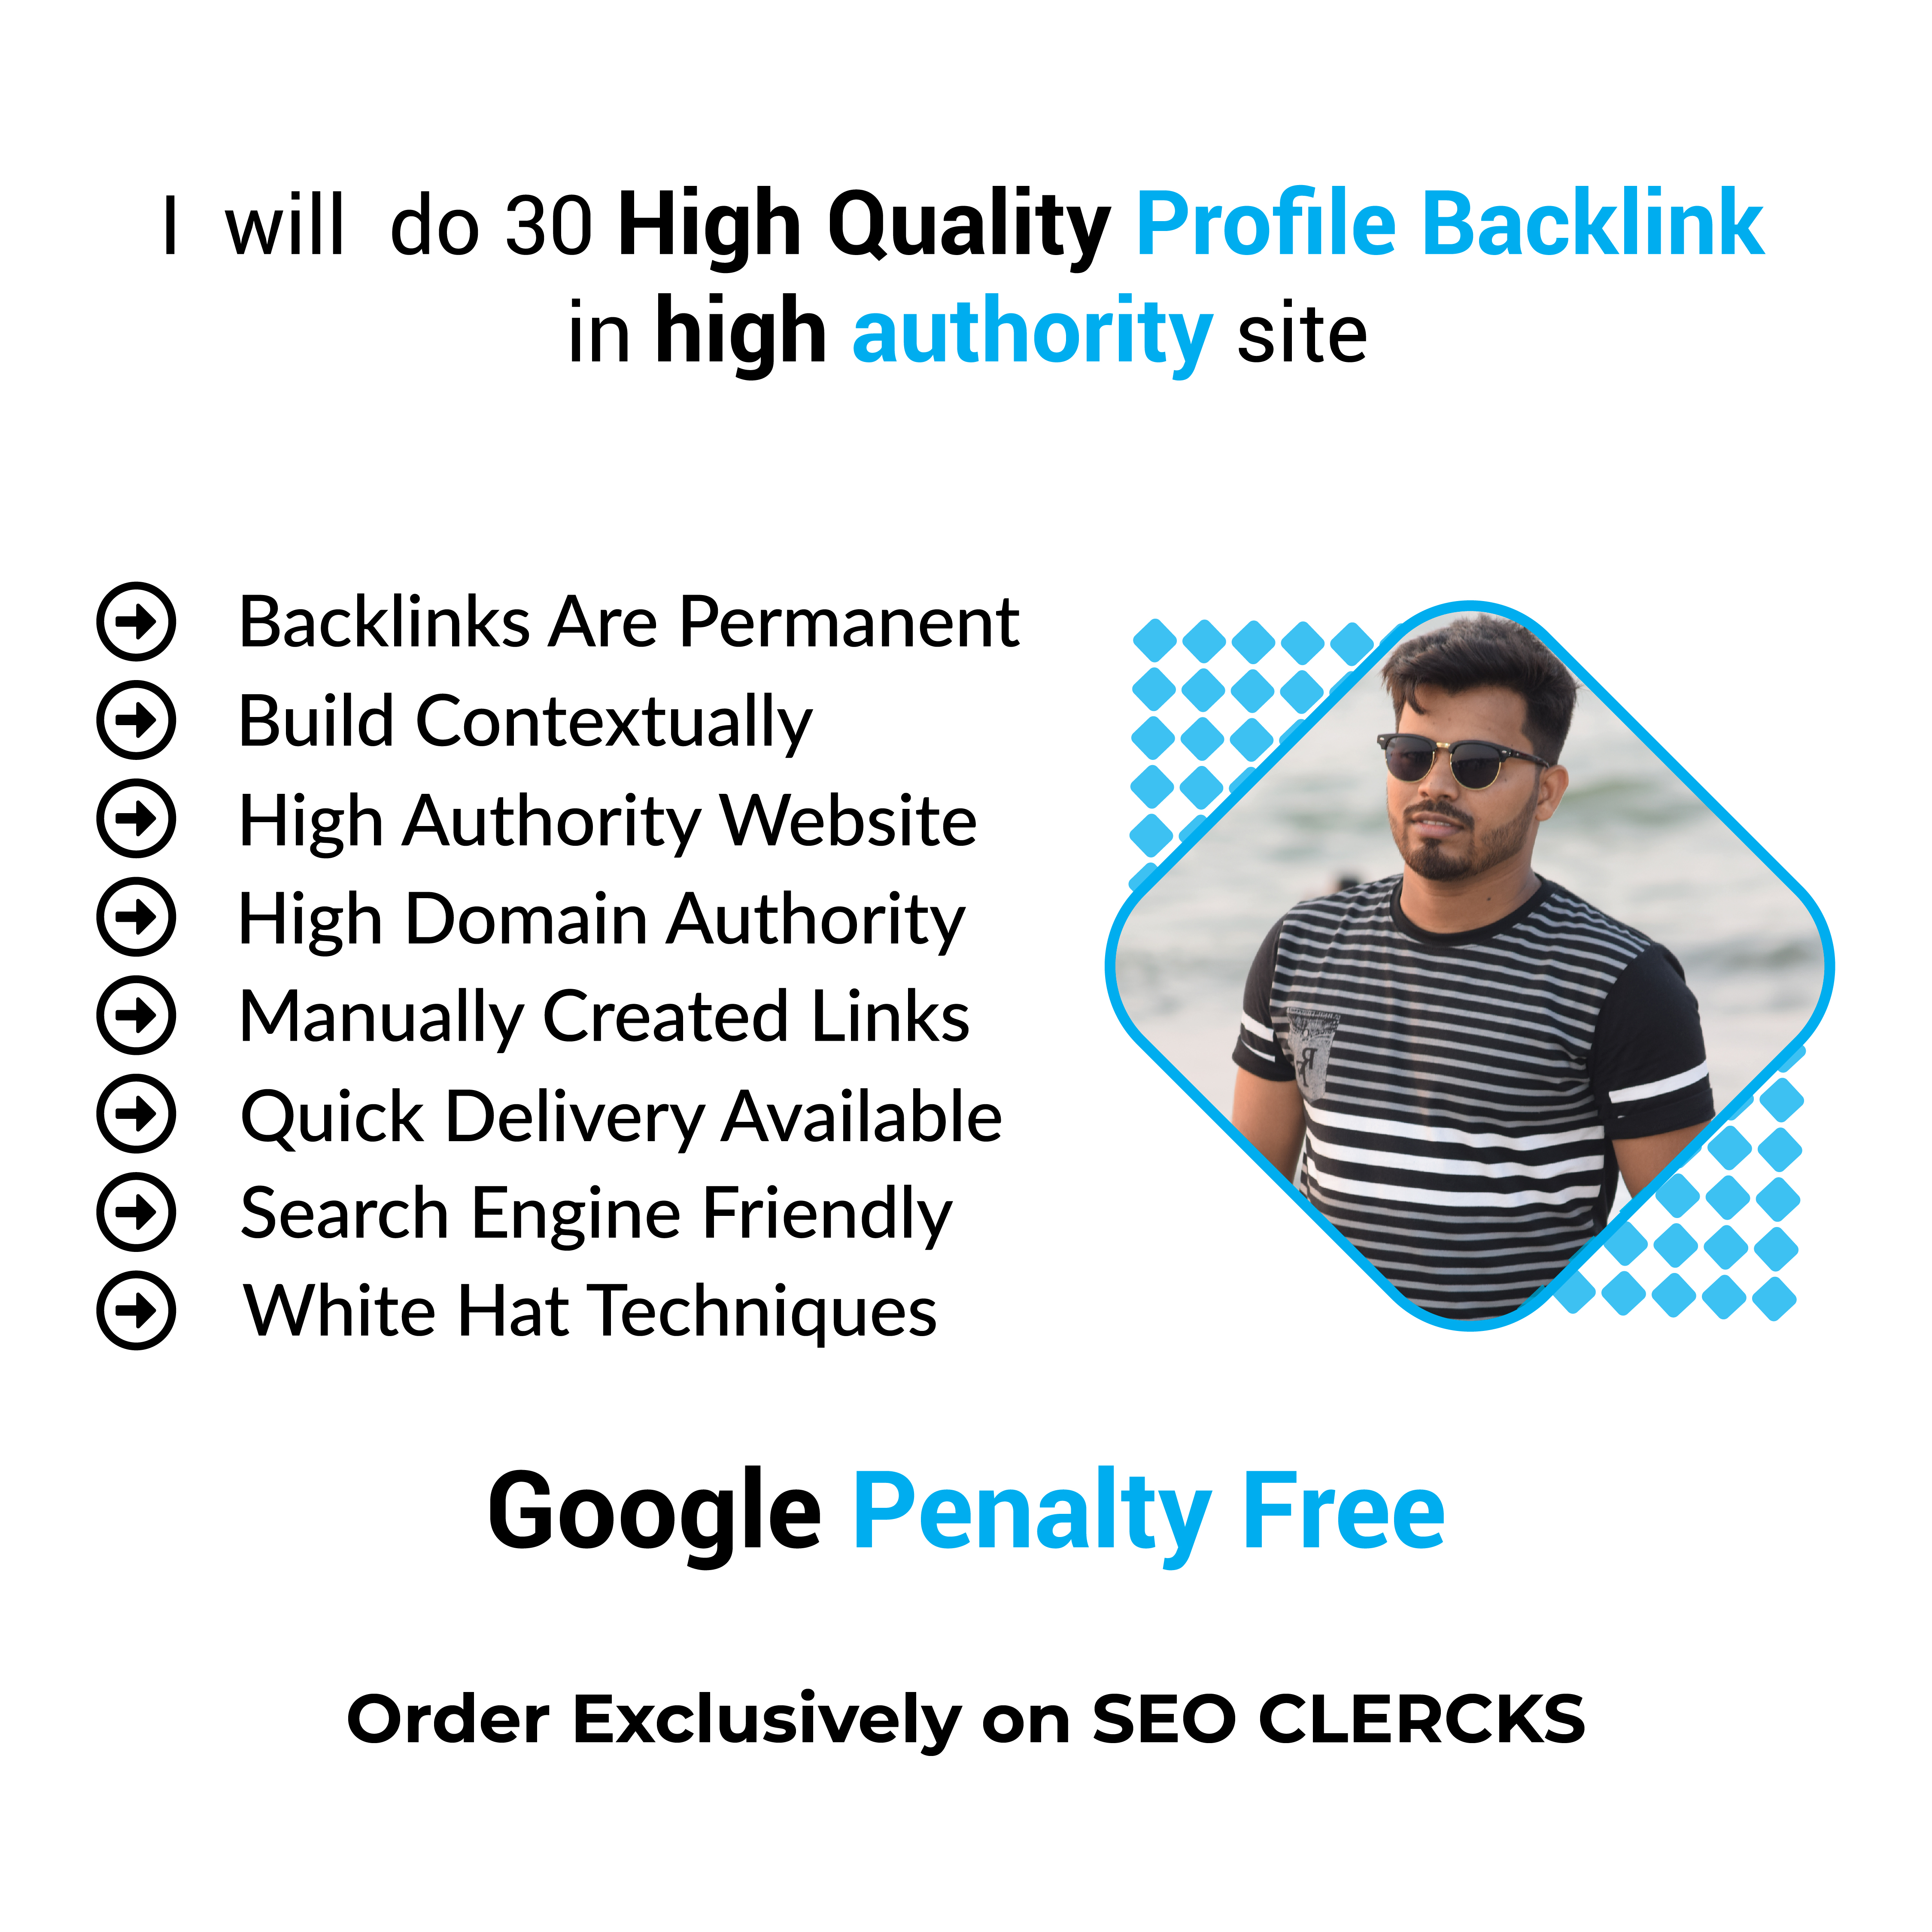 I will do 30 High Quality Profile Backlink in High Authority Site